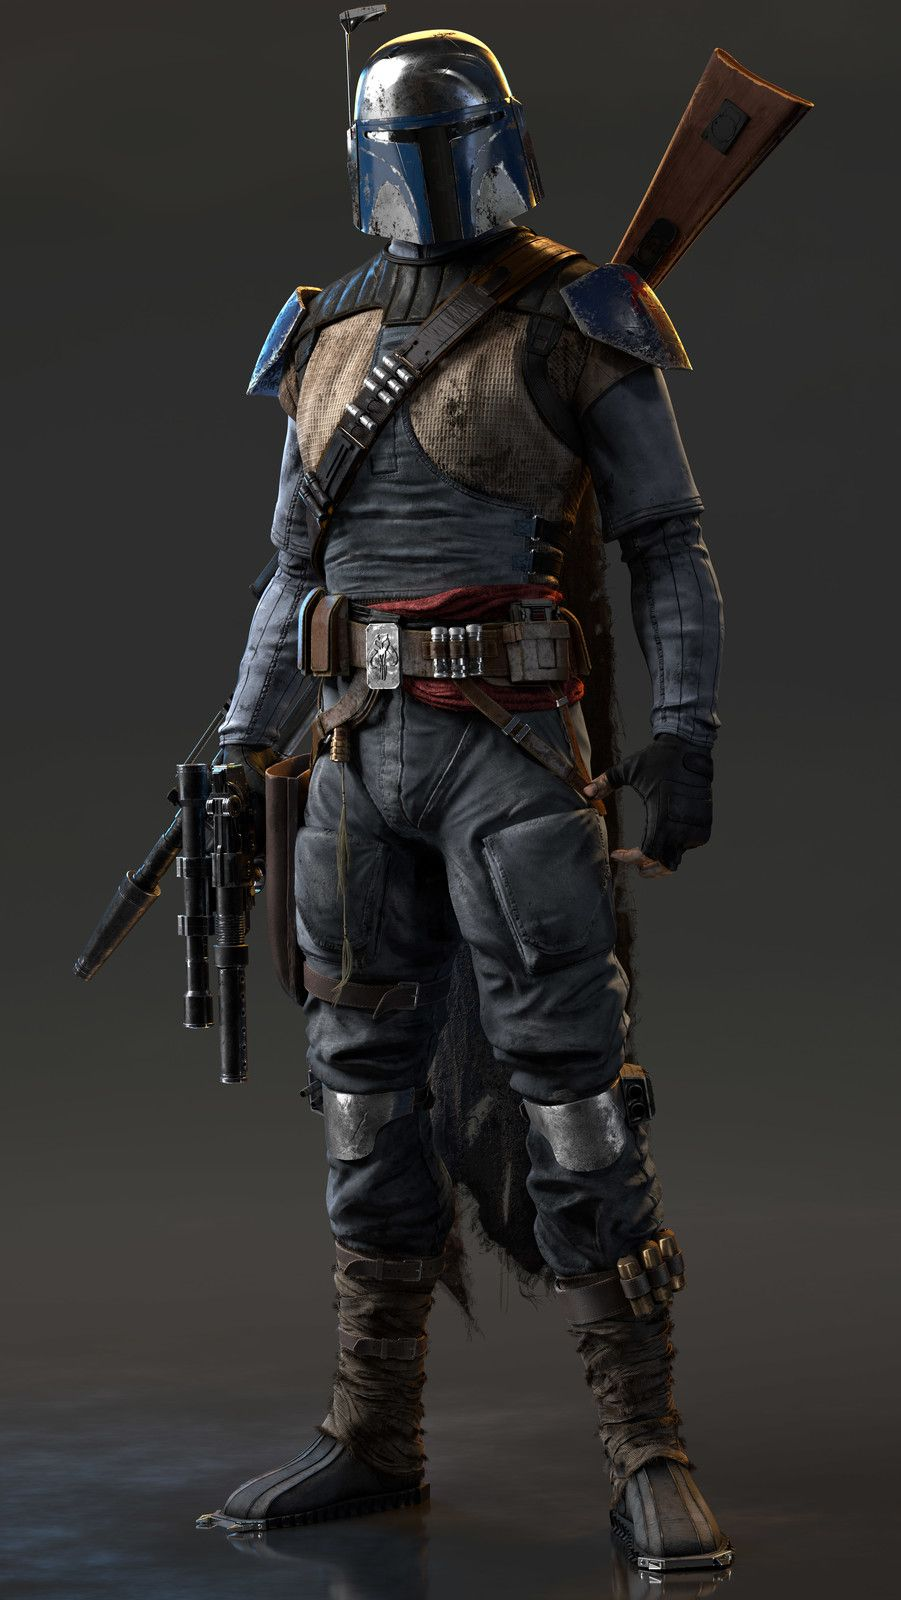 boba 39 s inherited mandalorian gear from his late father. Black Bedroom Furniture Sets. Home Design Ideas